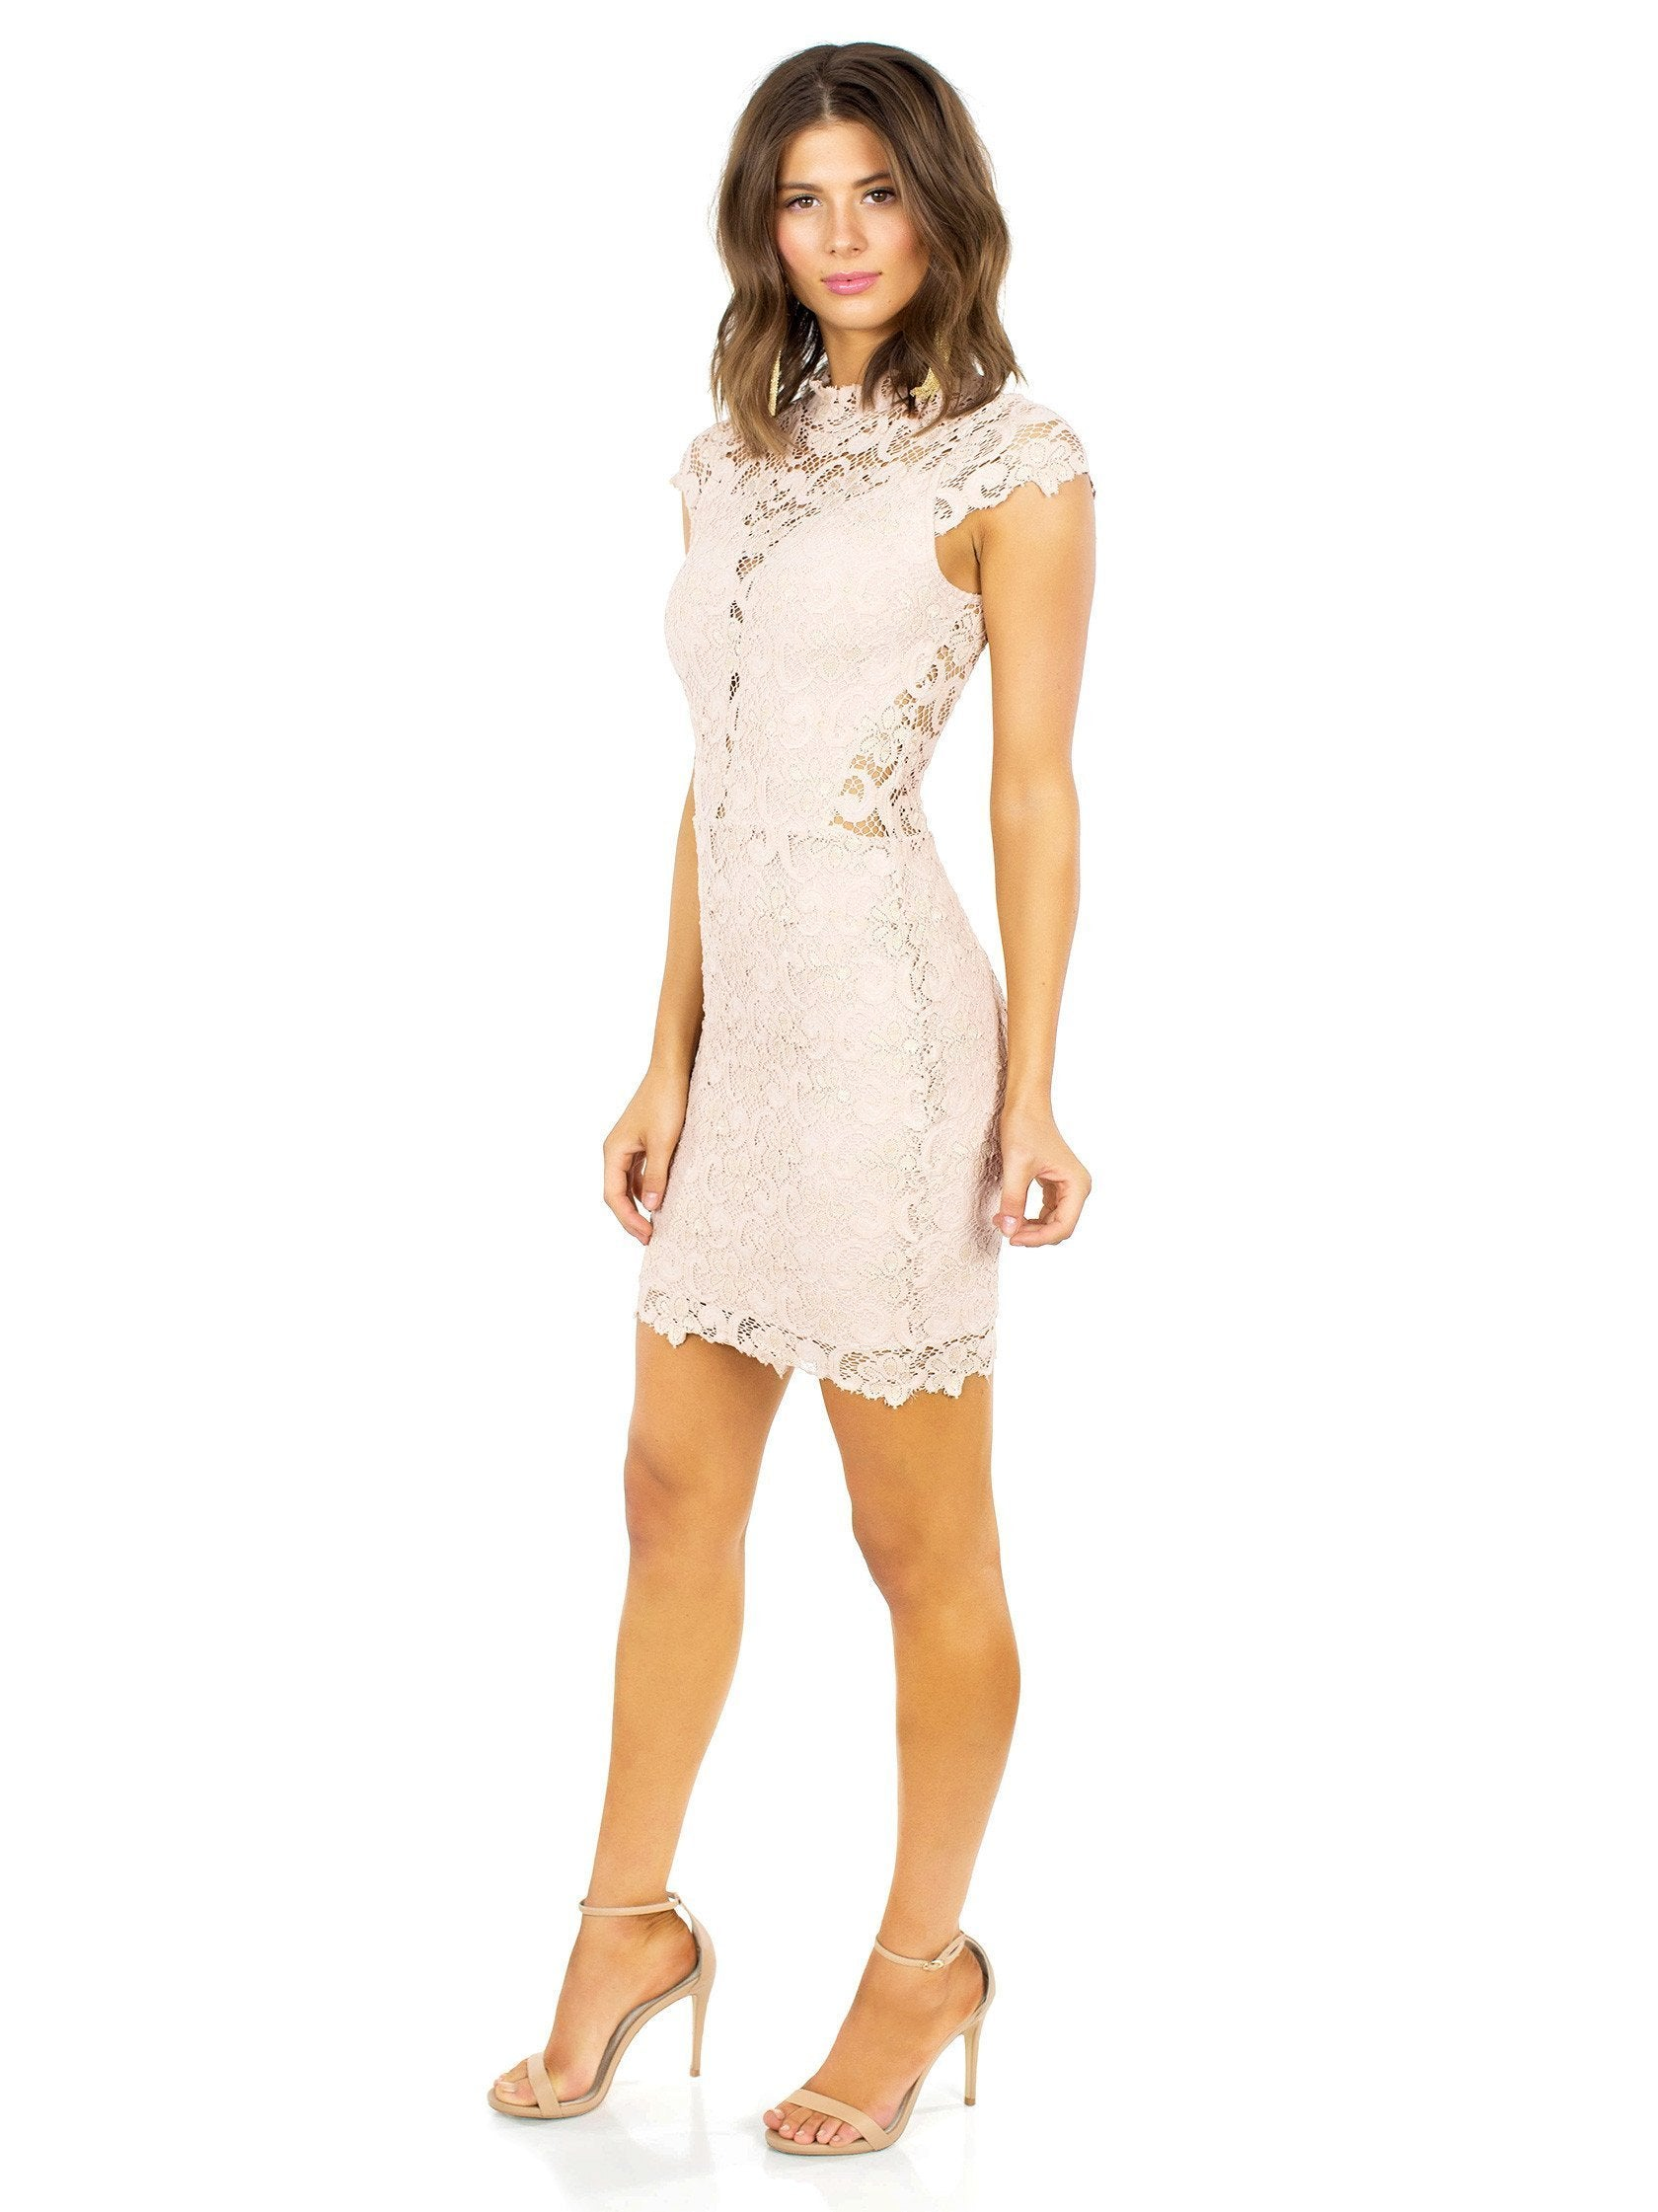 Woman wearing a dress rental from Nightcap Clothing called Dixie Lace 16th District Mini Dress